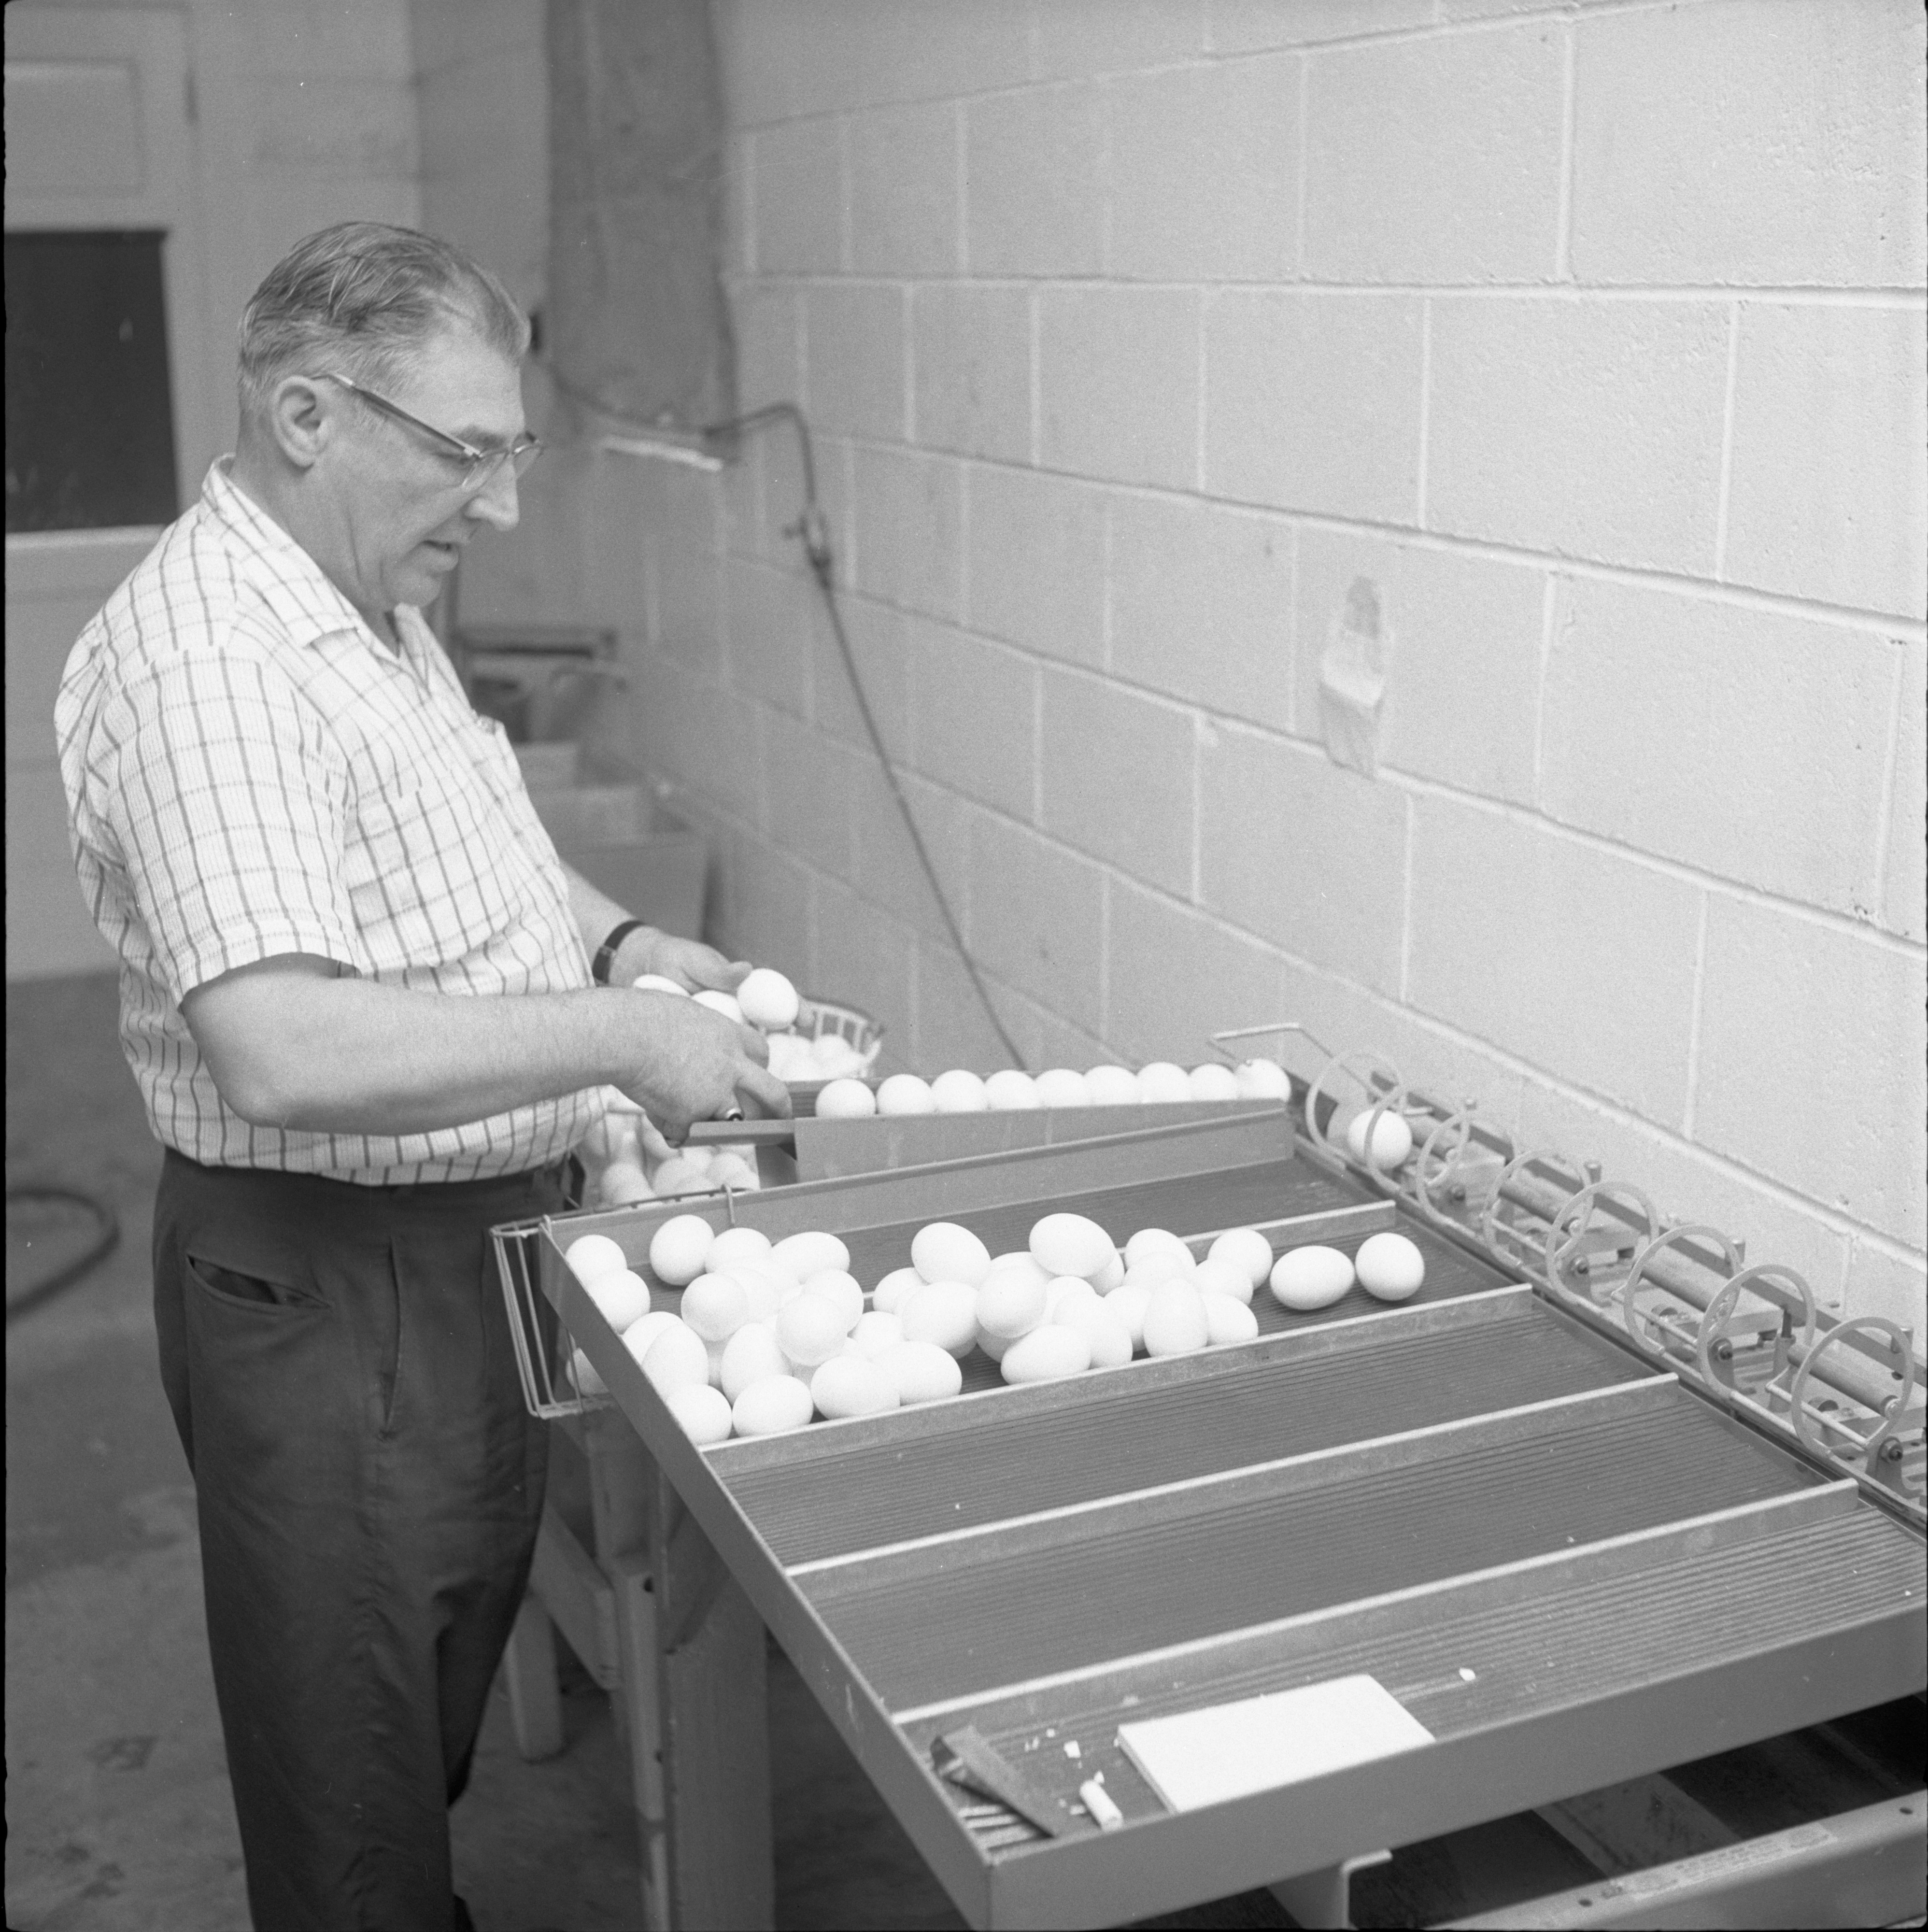 Luther Klager Inspects Eggs At  Klager's Hatchery, June 1959 image